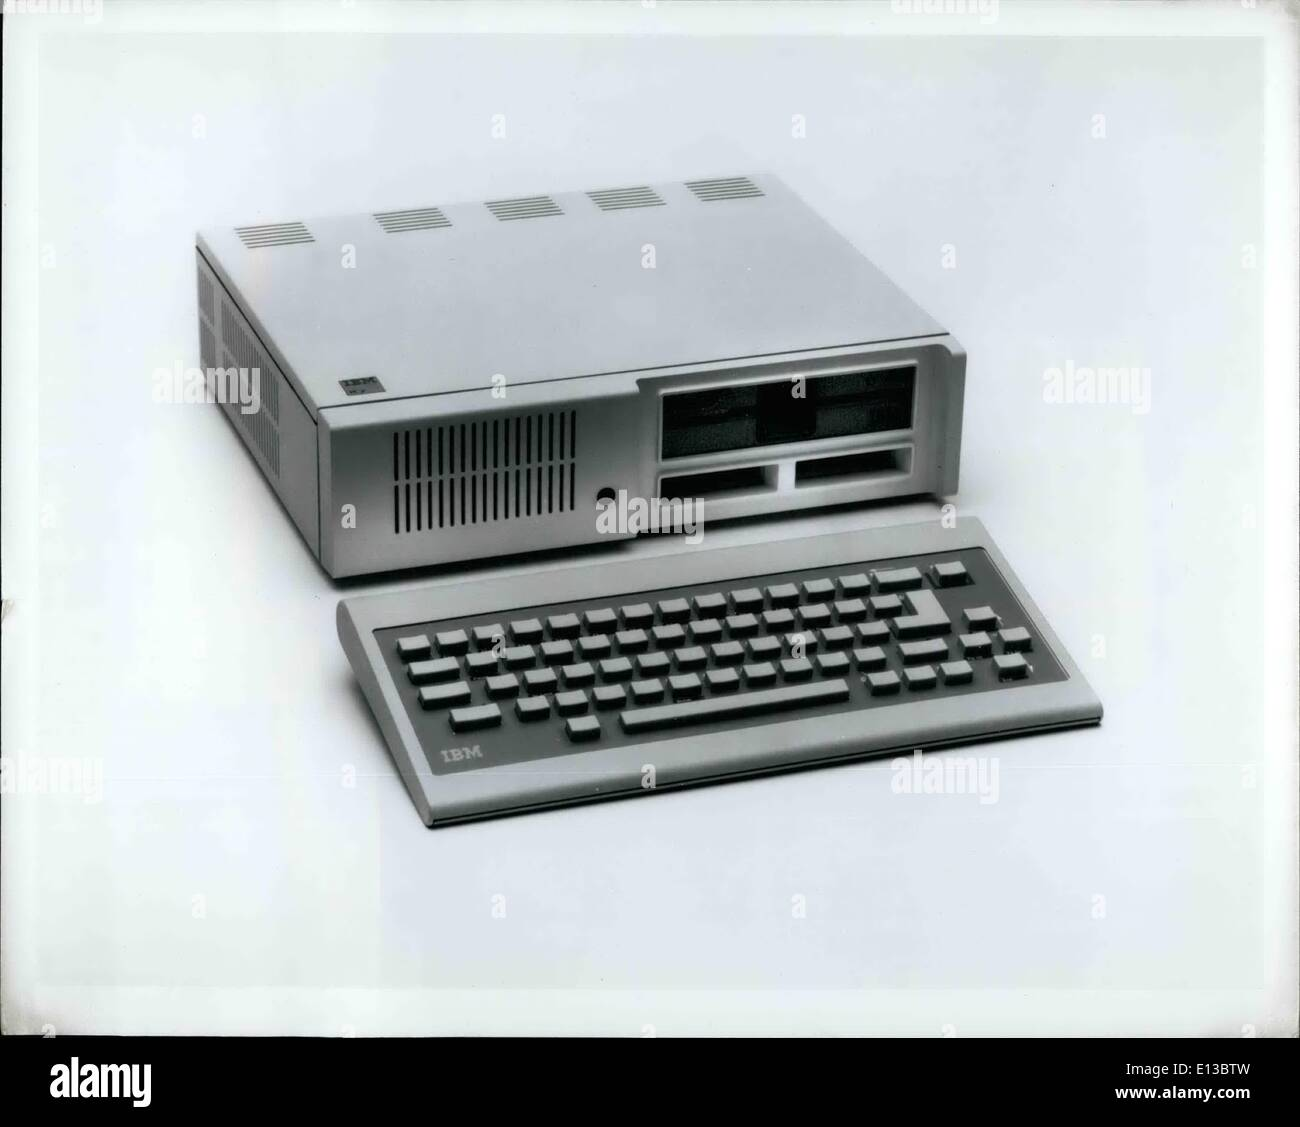 Feb. 29, 2012 - The IBM PCjr is the company's newest and most affordable computer. The version shown above features 131,072 characters of user memory, a 368, 640-character diskette drive, two program cartridge slots, and a cordless, infrared keyboard. It can be connected to a television or color monitor. When used with IBM's new Disk Operating System 2.1, this model is compatible with many diskette programs available for IBM Personal Computers. It is priced at ,269 at IBM Product Centers. The entry model, with 65,536 characters of user memory and without the diskette drive, is Priced at 69. - Stock Image